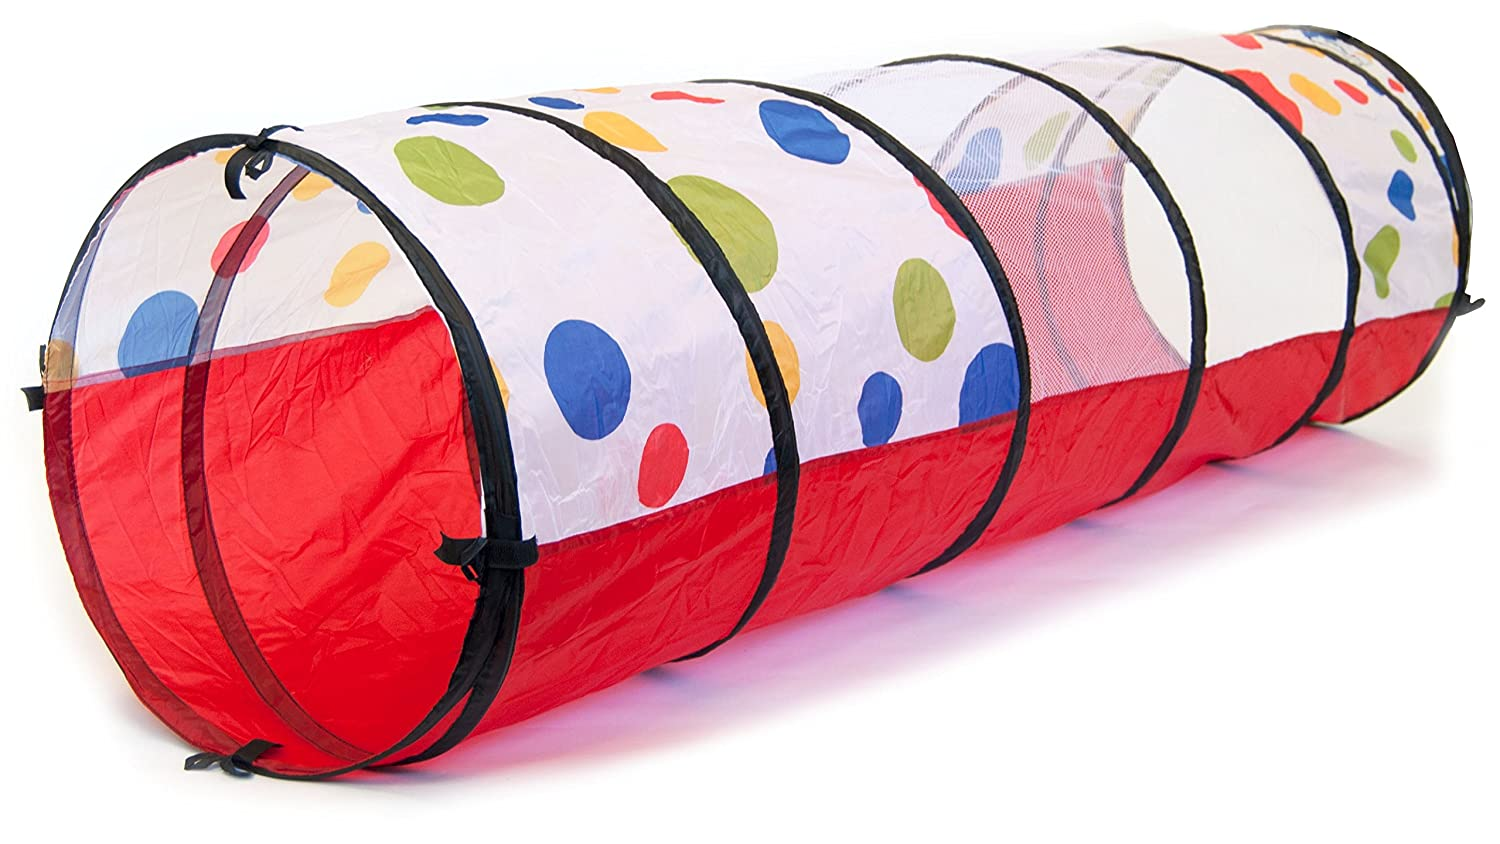 eWonderWorld Polka Dot Teepee Play Tent House